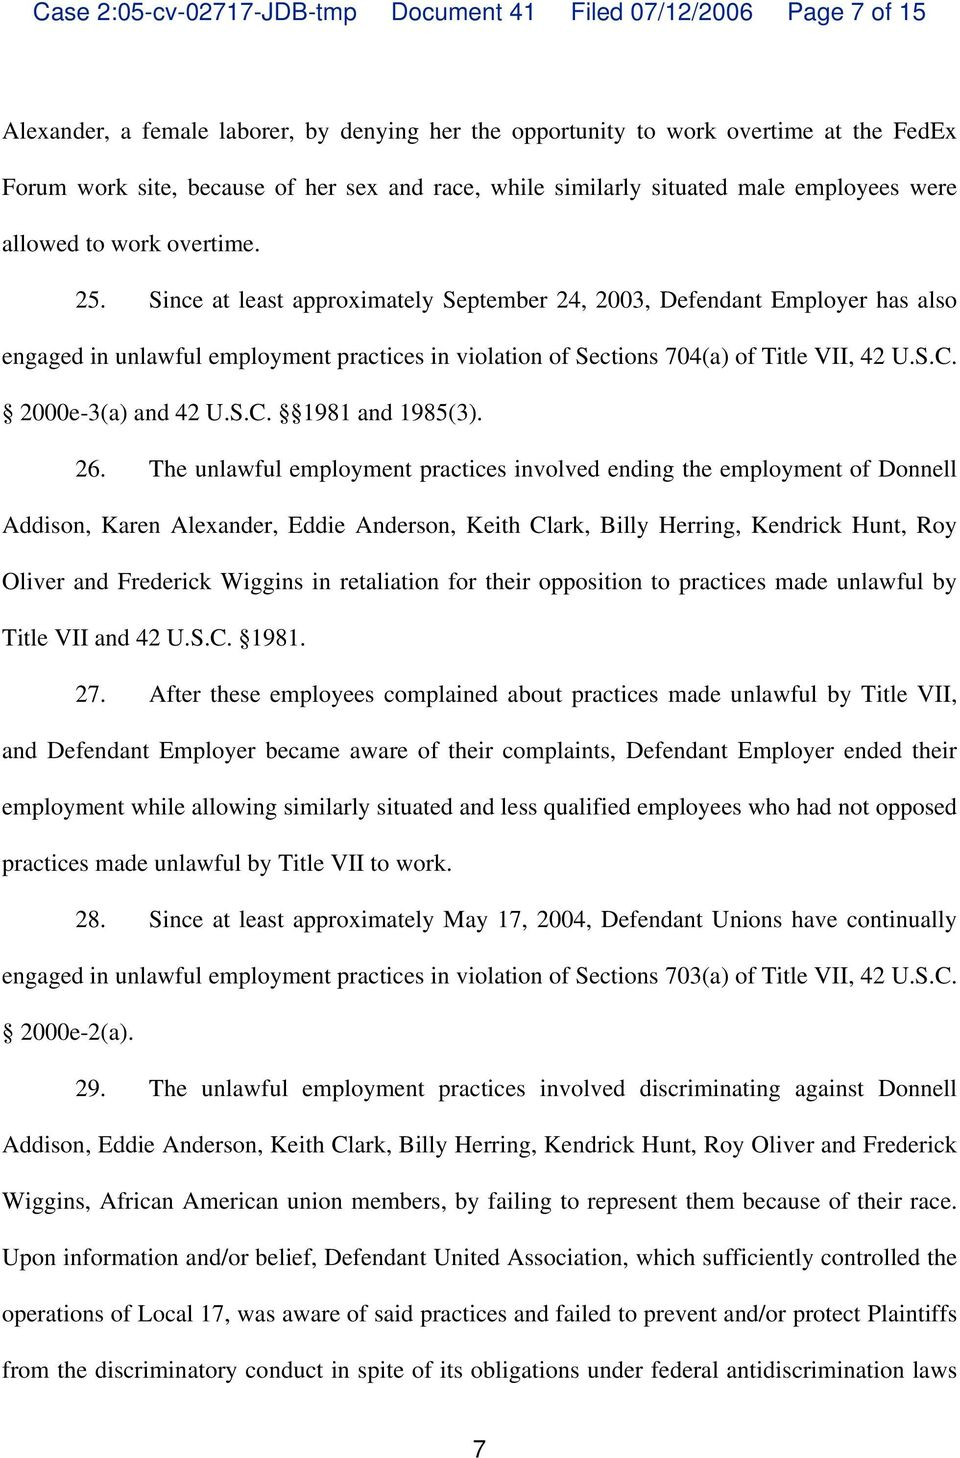 Since at least approximately September 24, 2003, Defendant Employer has also engaged in unlawful employment practices in violation of Sections 704(a of Title VII, 42 U.S.C. 2000e-3(a and 42 U.S.C. 1981 and 1985(3.